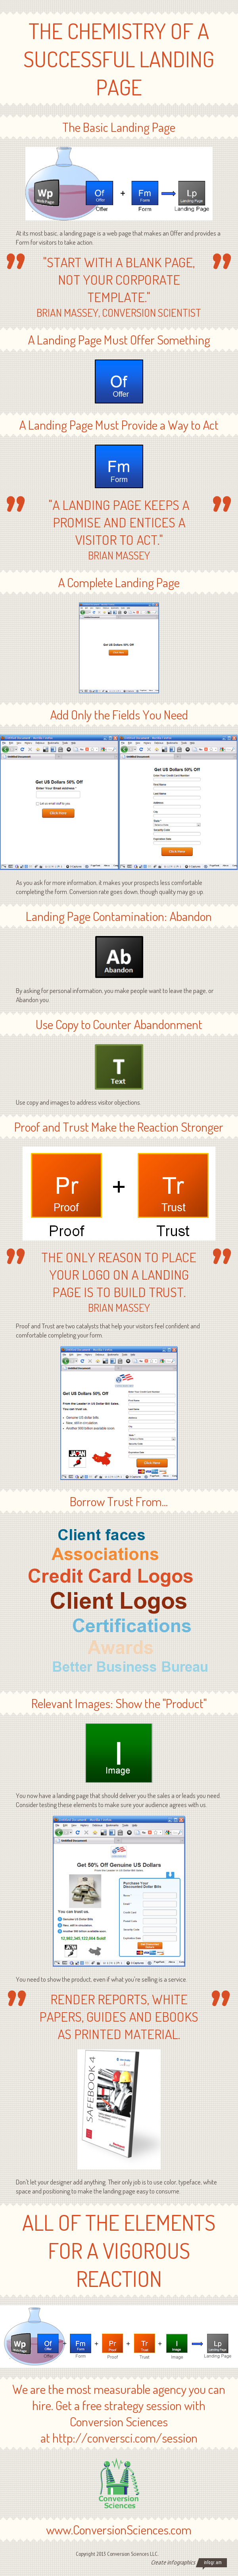 The Chemistry of a Successful Landing Page Infographic